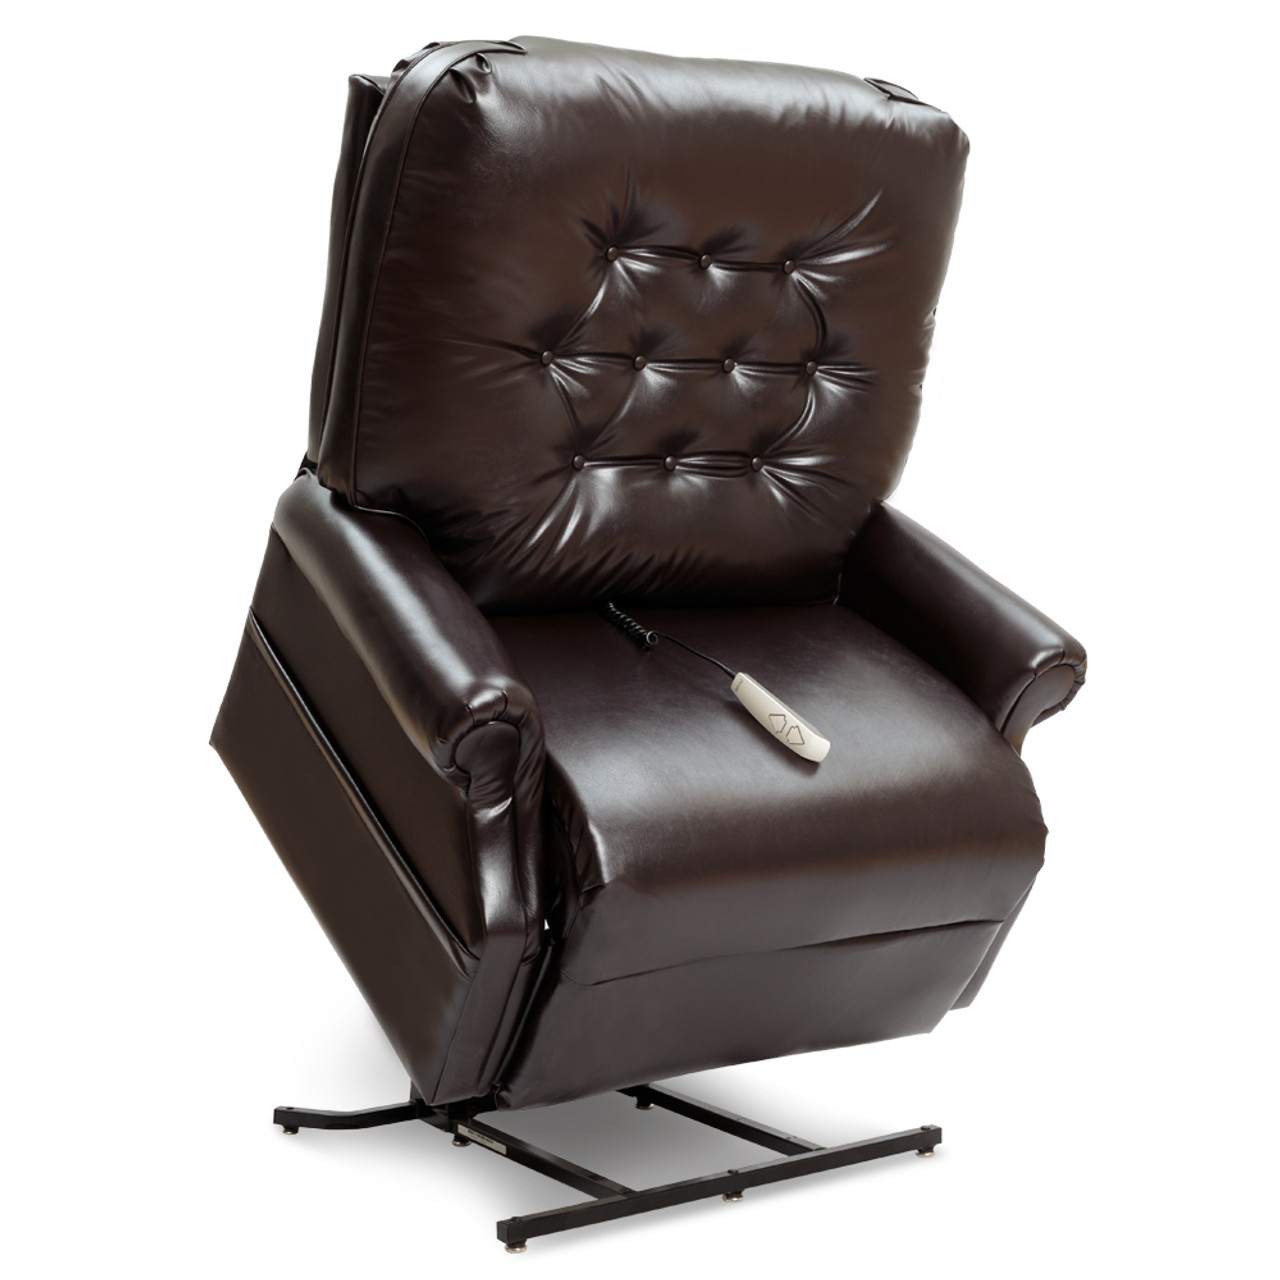 LC358XXL 2 Position Lift Chair Lifted, dark fabric